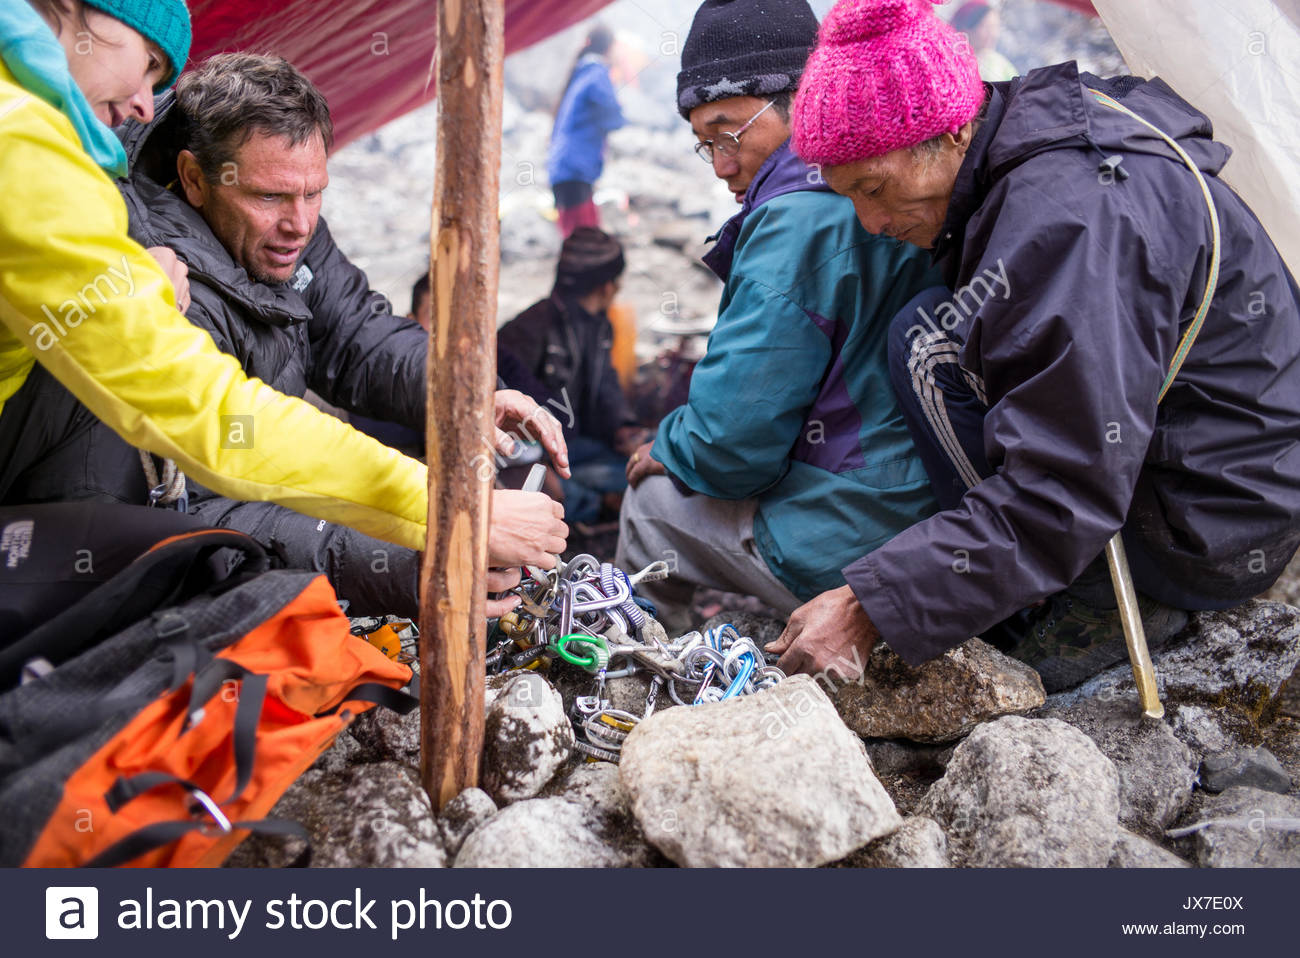 Expedition members check equipment with the help of local guides. - Stock Image